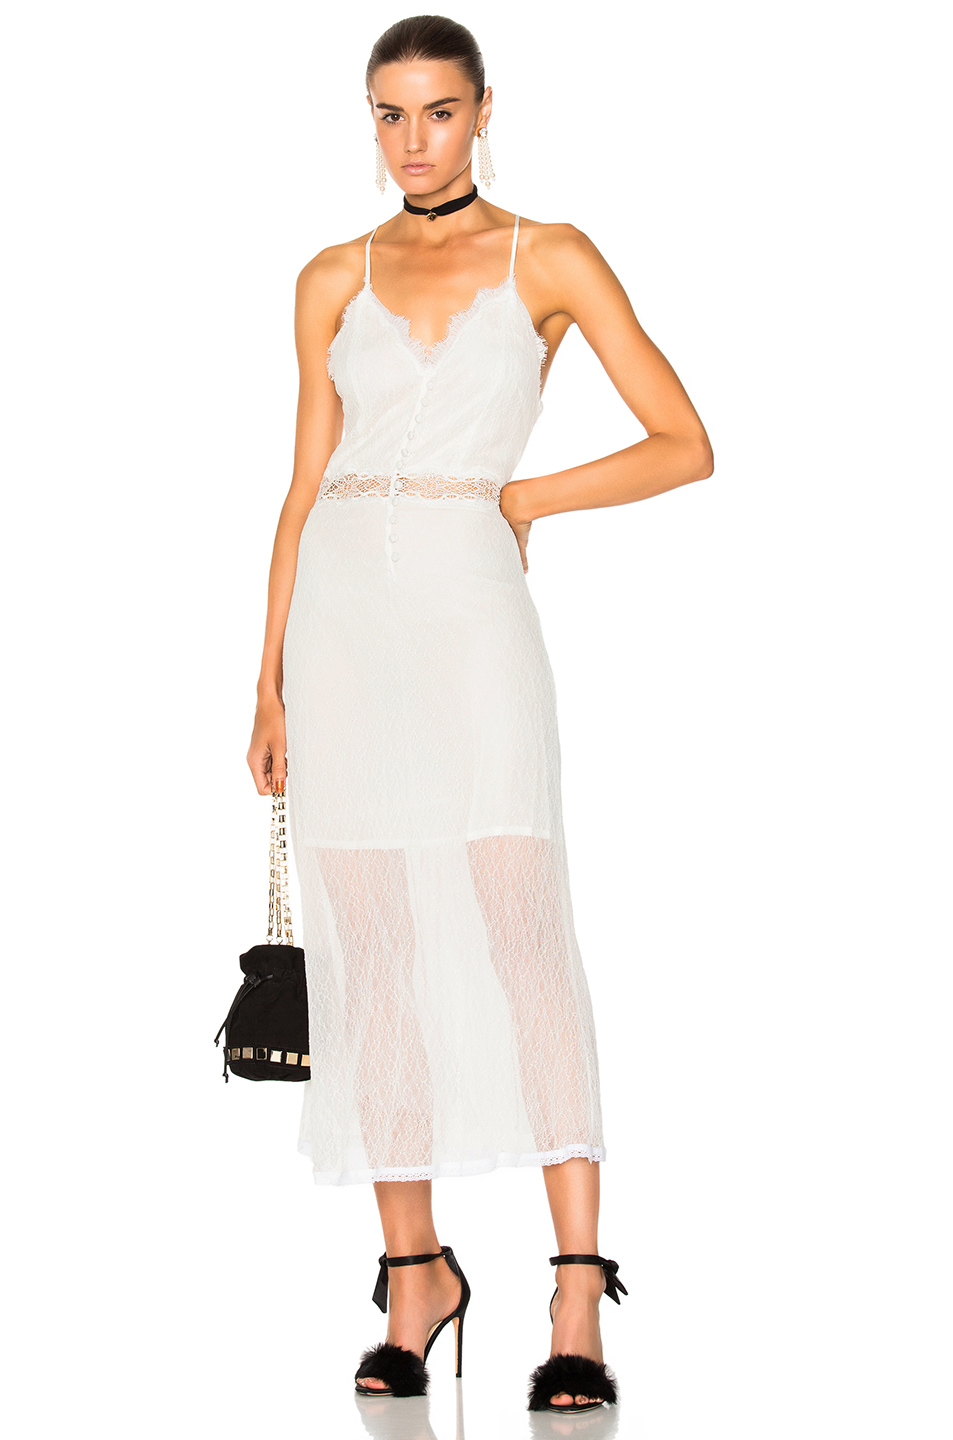 JONATHAN SIMKHAI Threaded Tulle Lace Nightgown in White